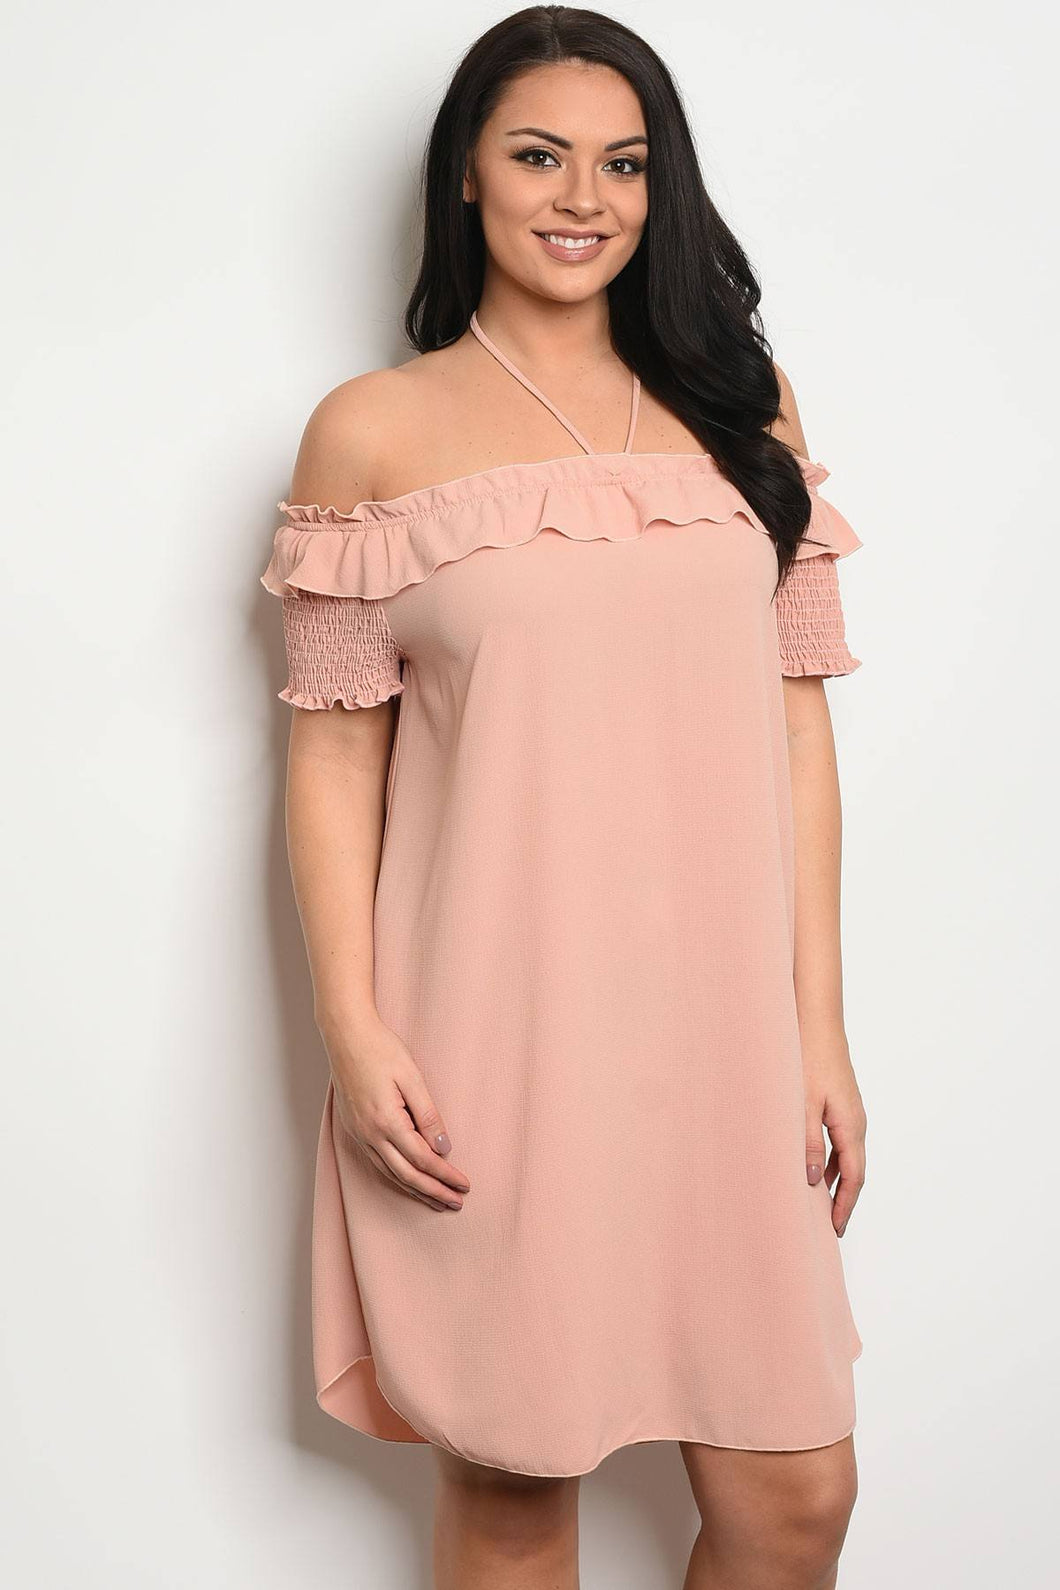 Ladies fashion plus size off the shoulder dress